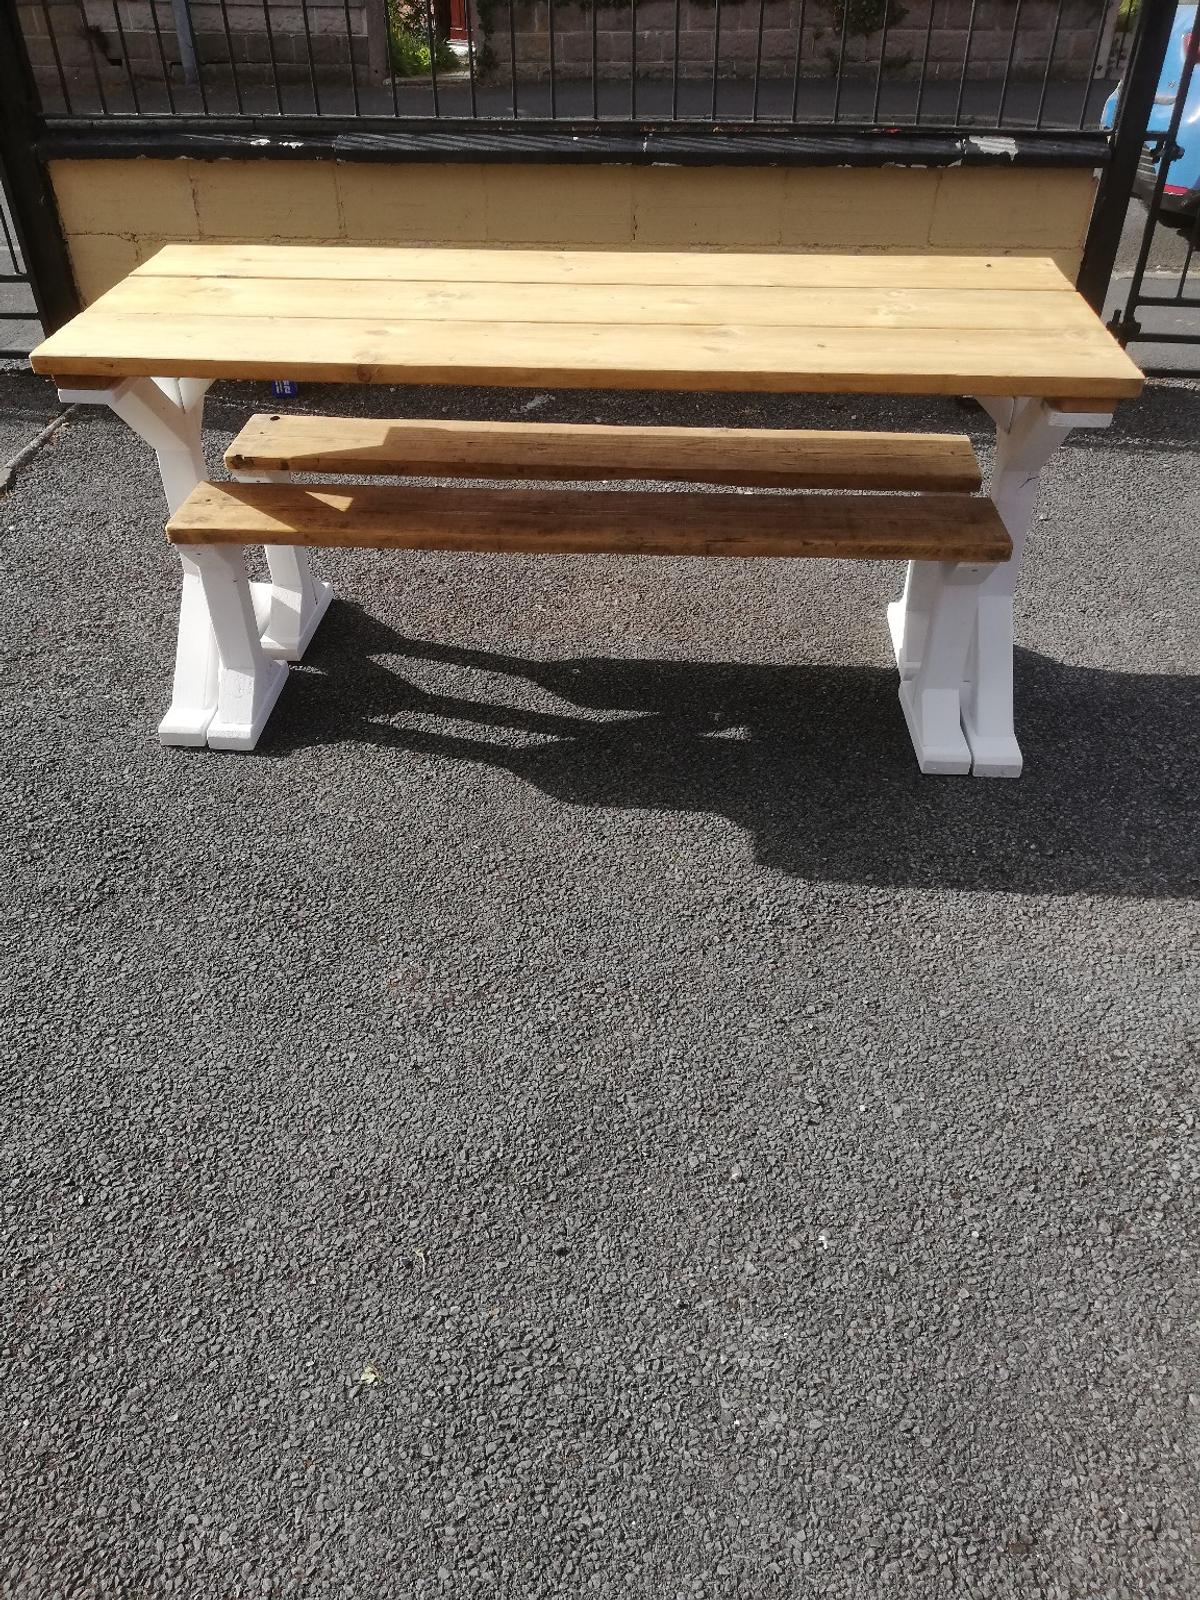 Farmhouse Rustic Dining Table And Bench Se In Stoke On Trent For 200 00 For Sale Shpock